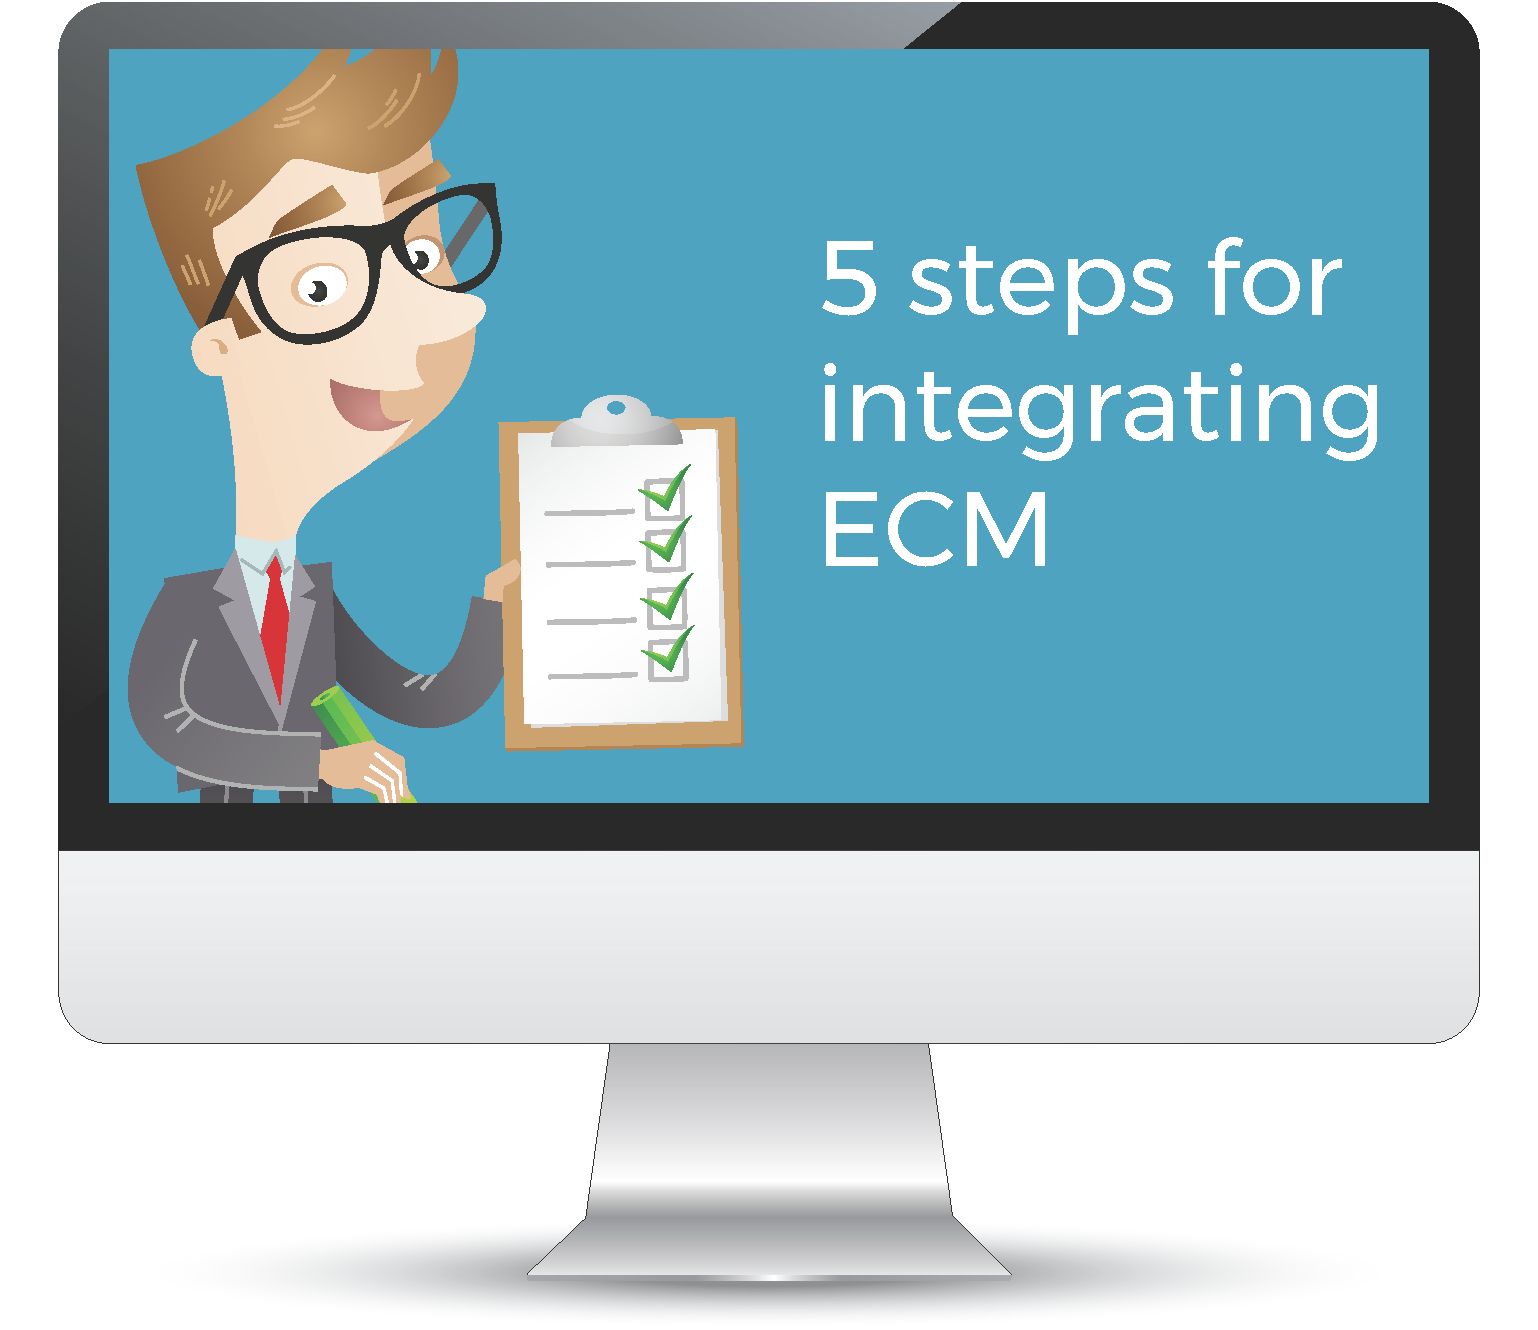 Integrating ECM